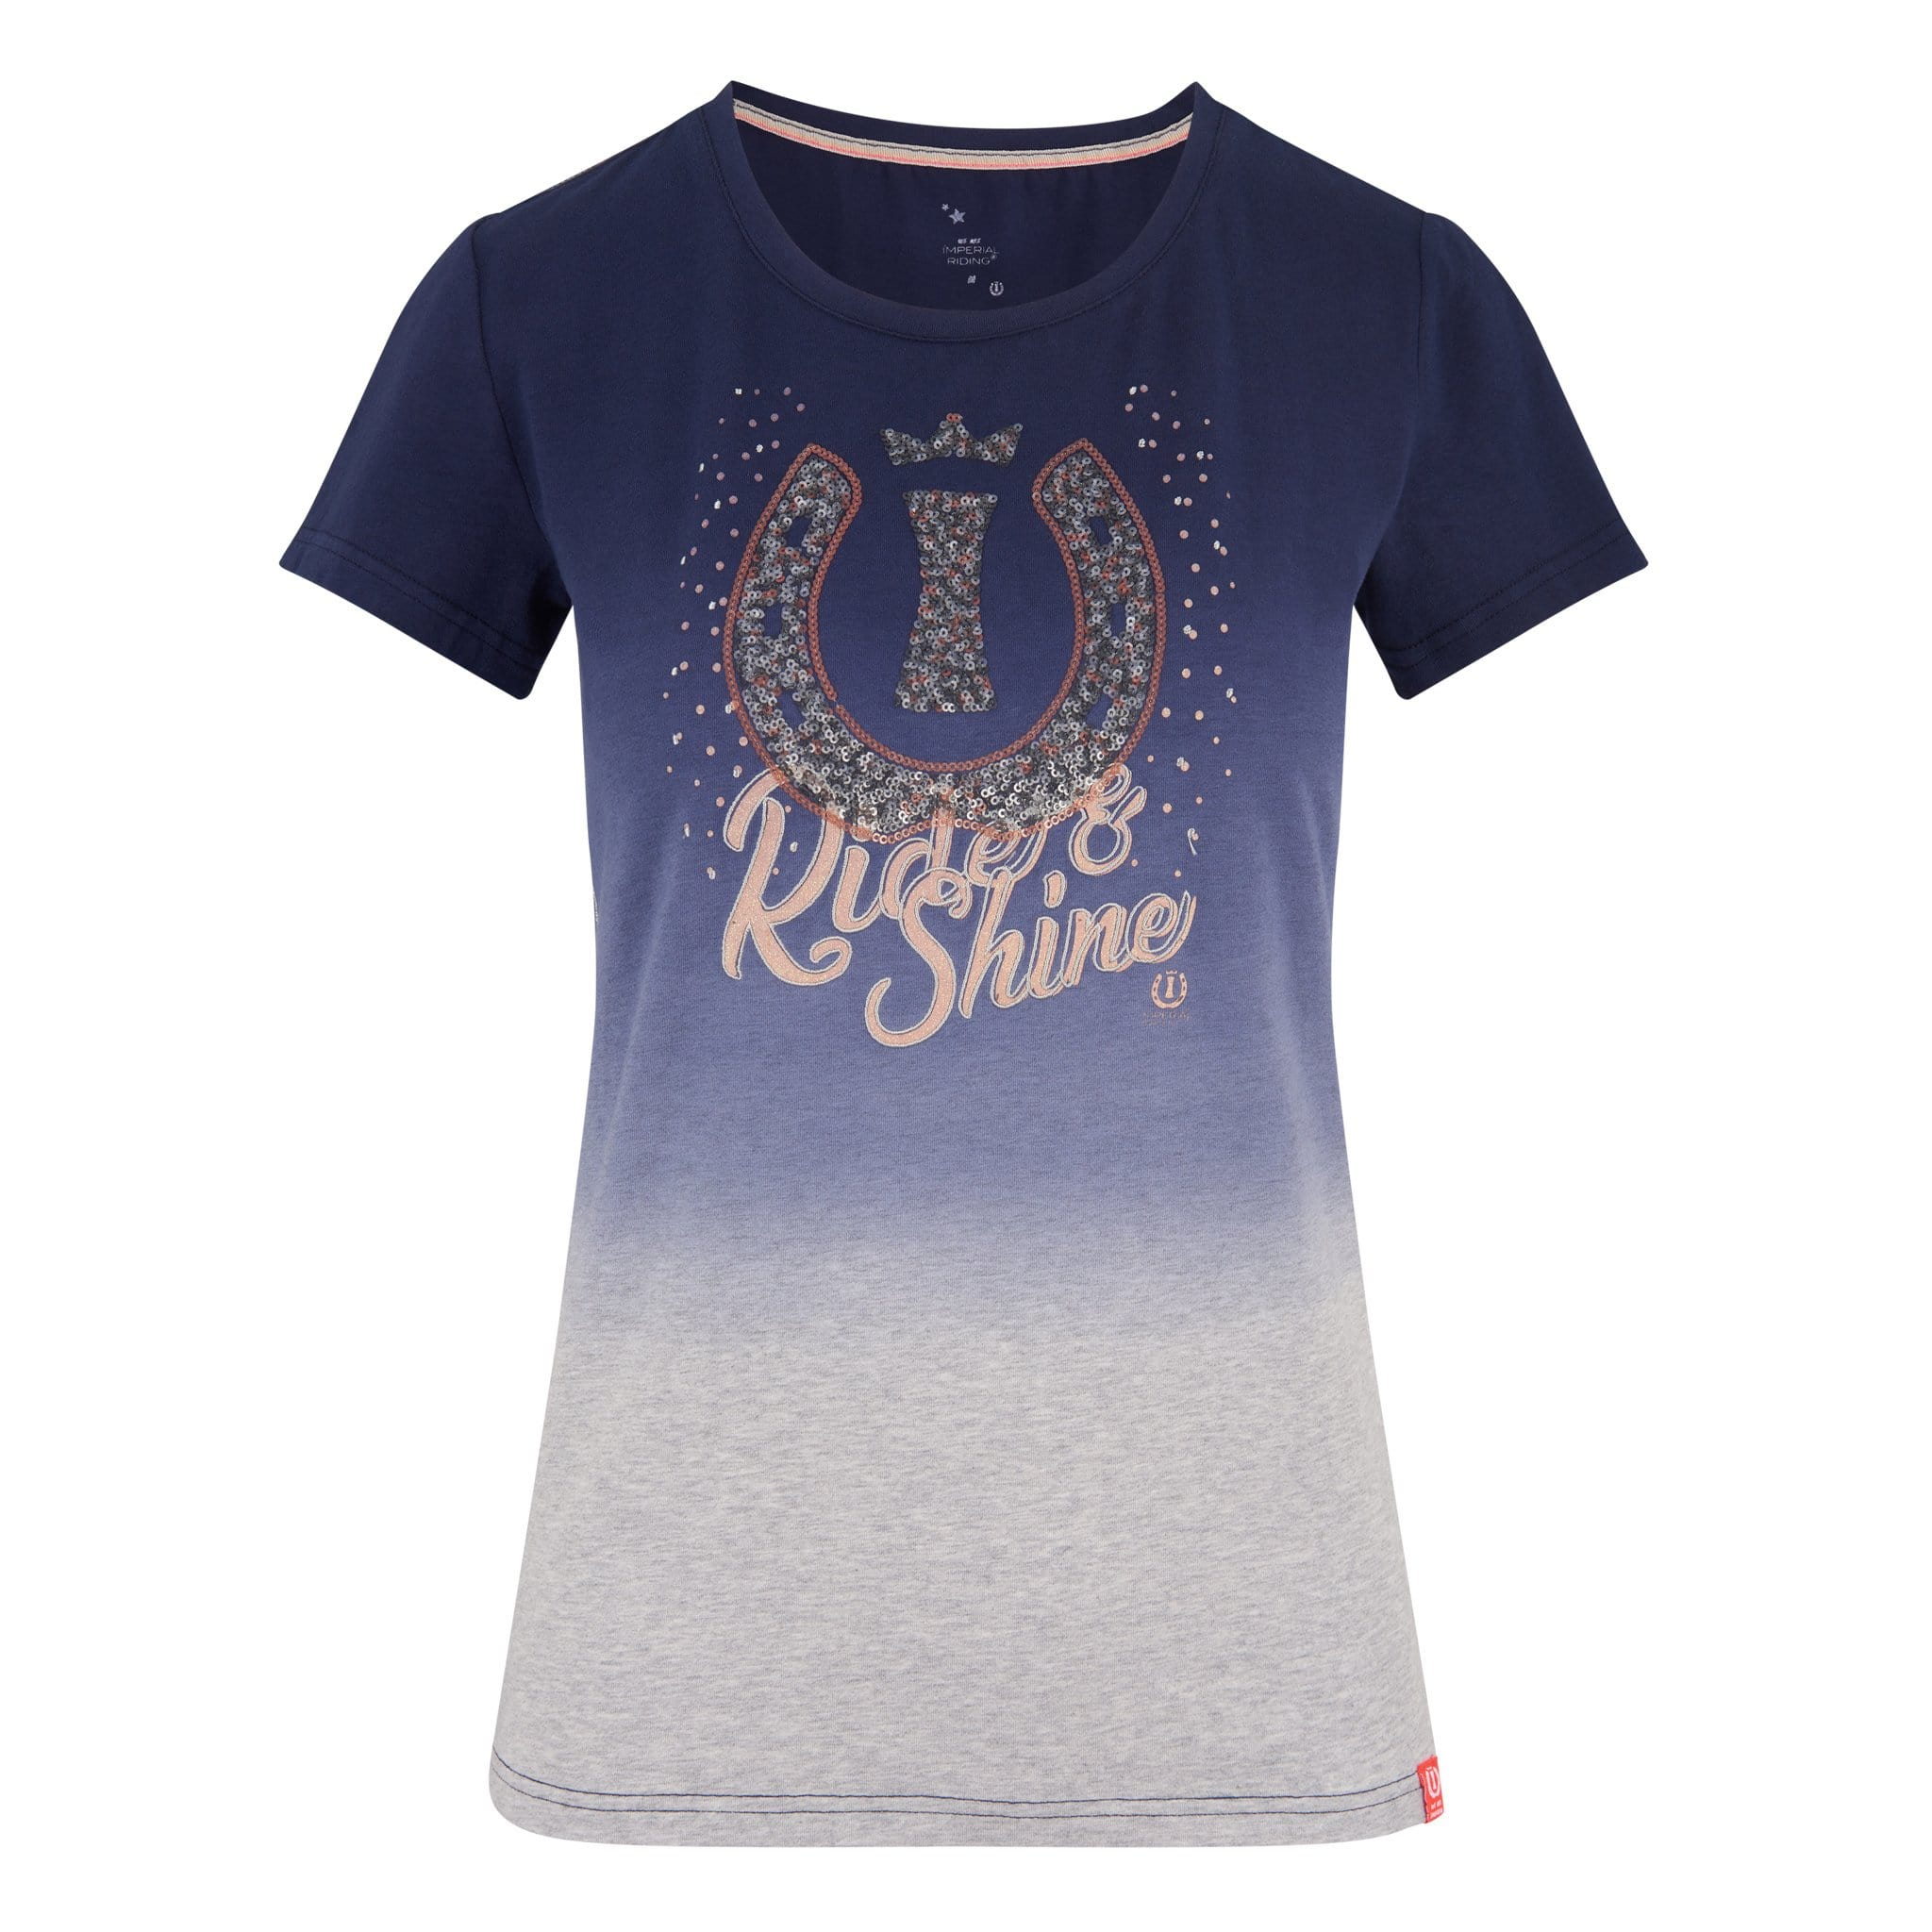 Imperial Riding Sweet Candy Short Sleeve T-Shirt KL35119016 Navy Blue and Grey With Ride and Shine design